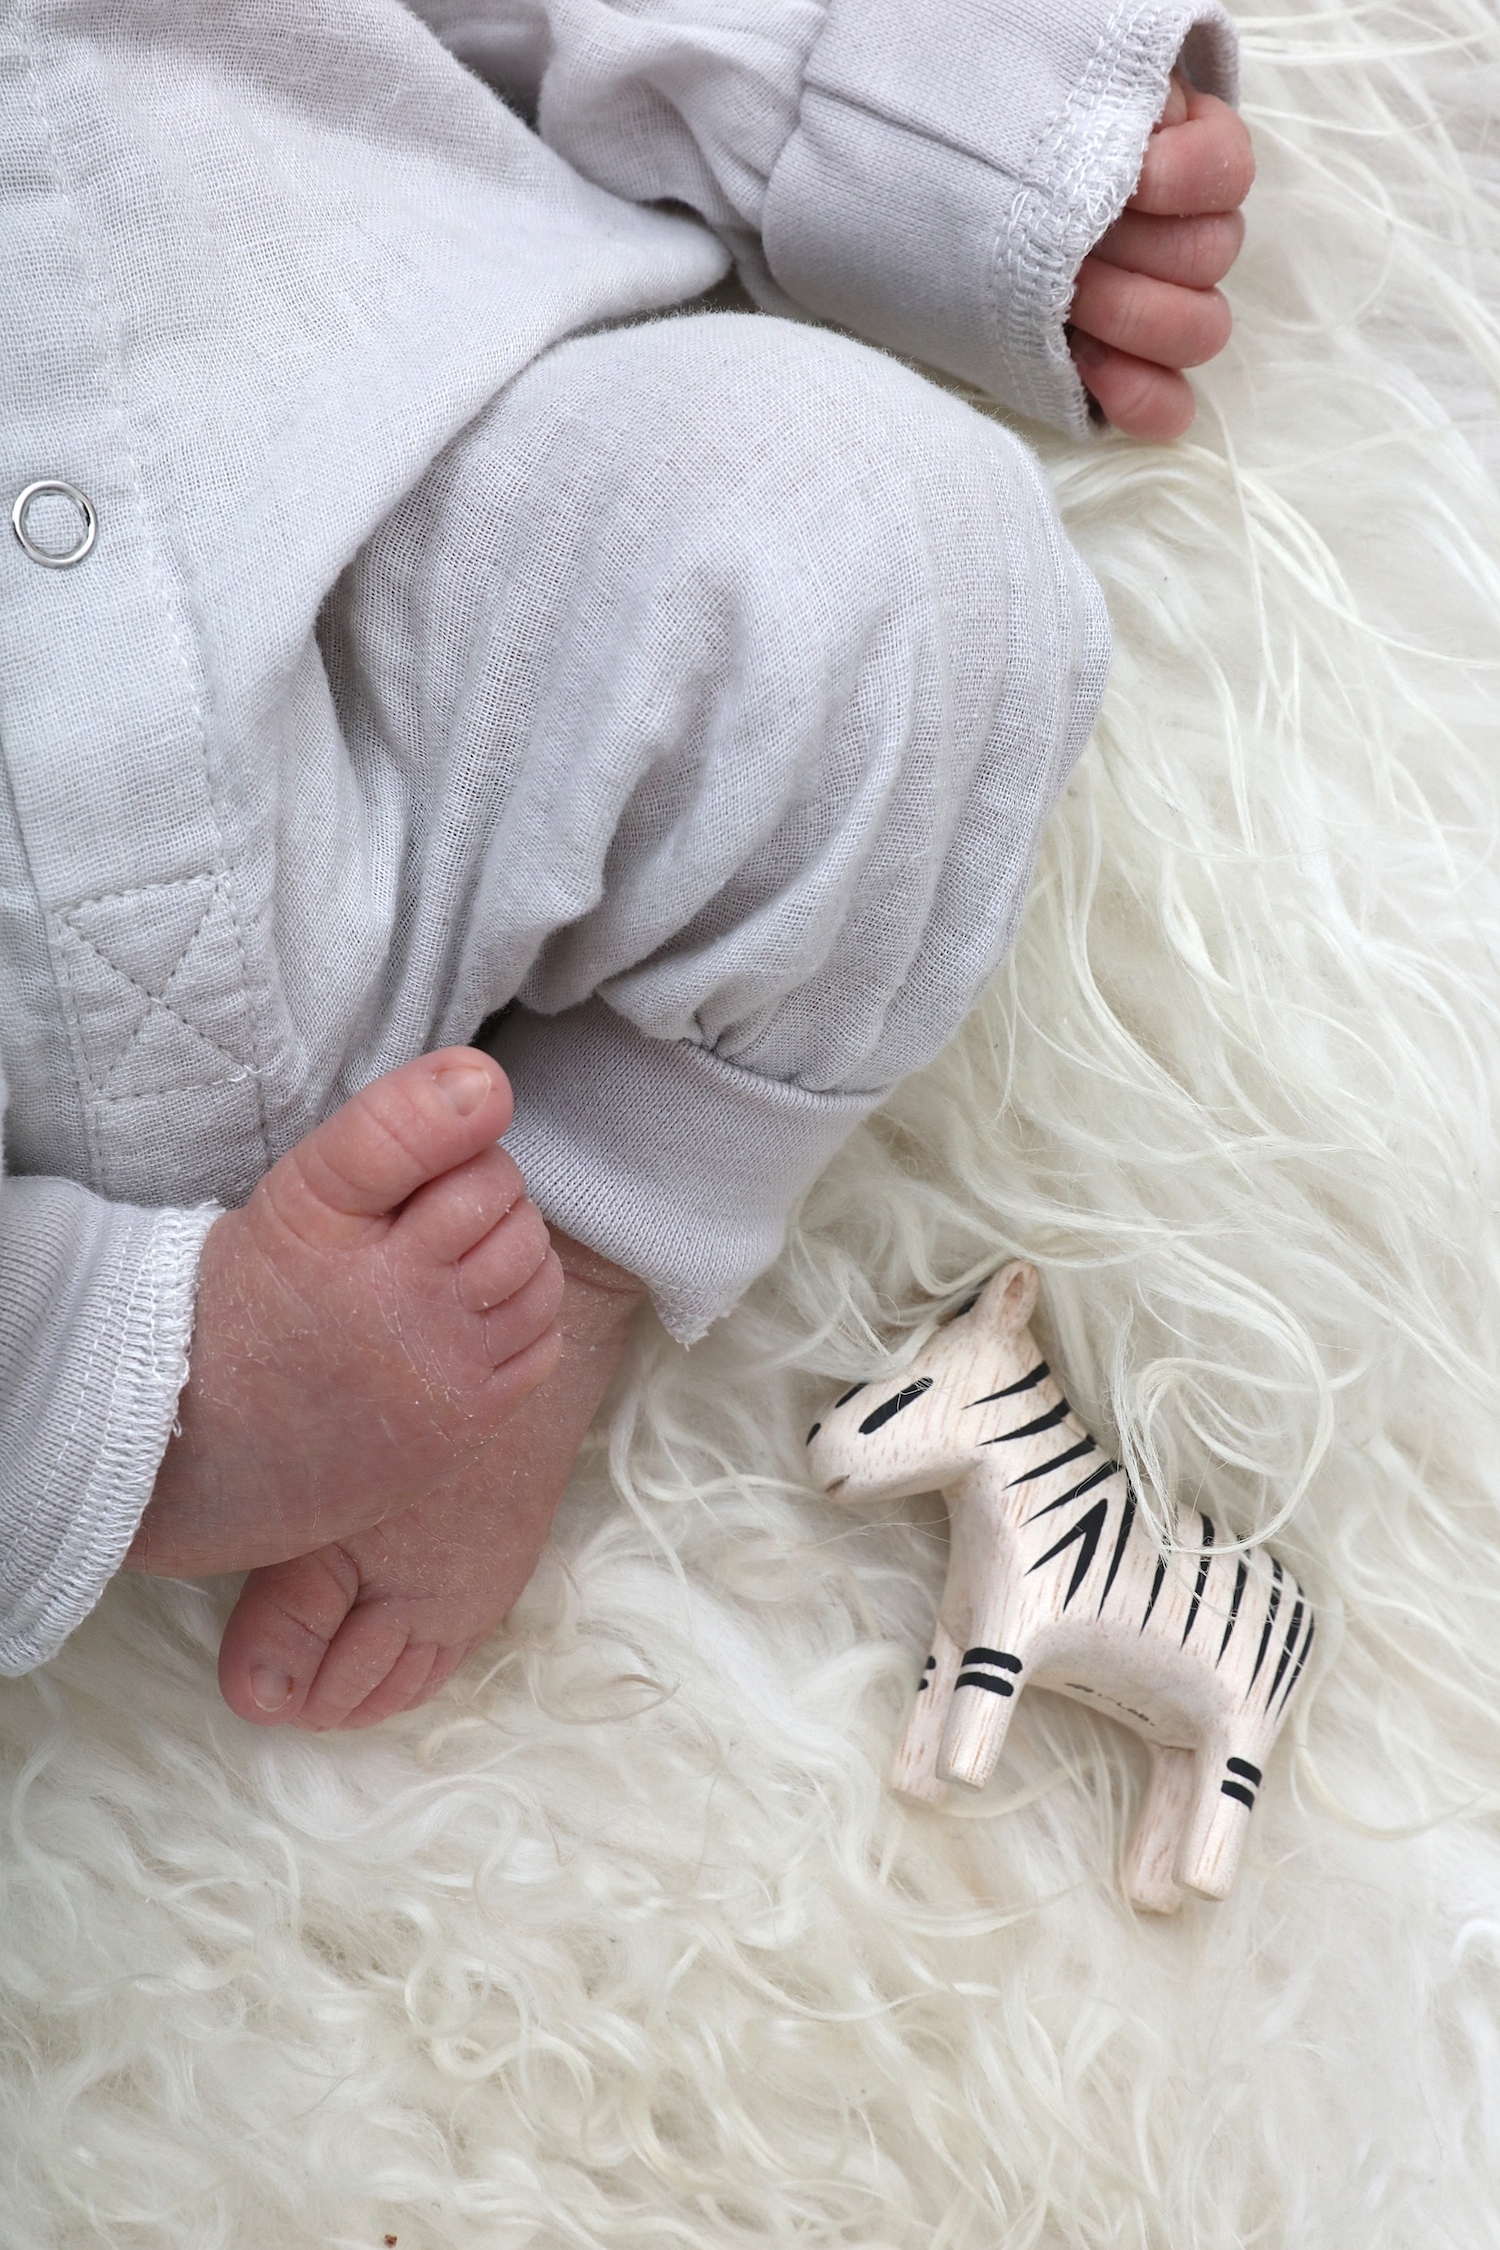 cissy_wears_toy_zebra